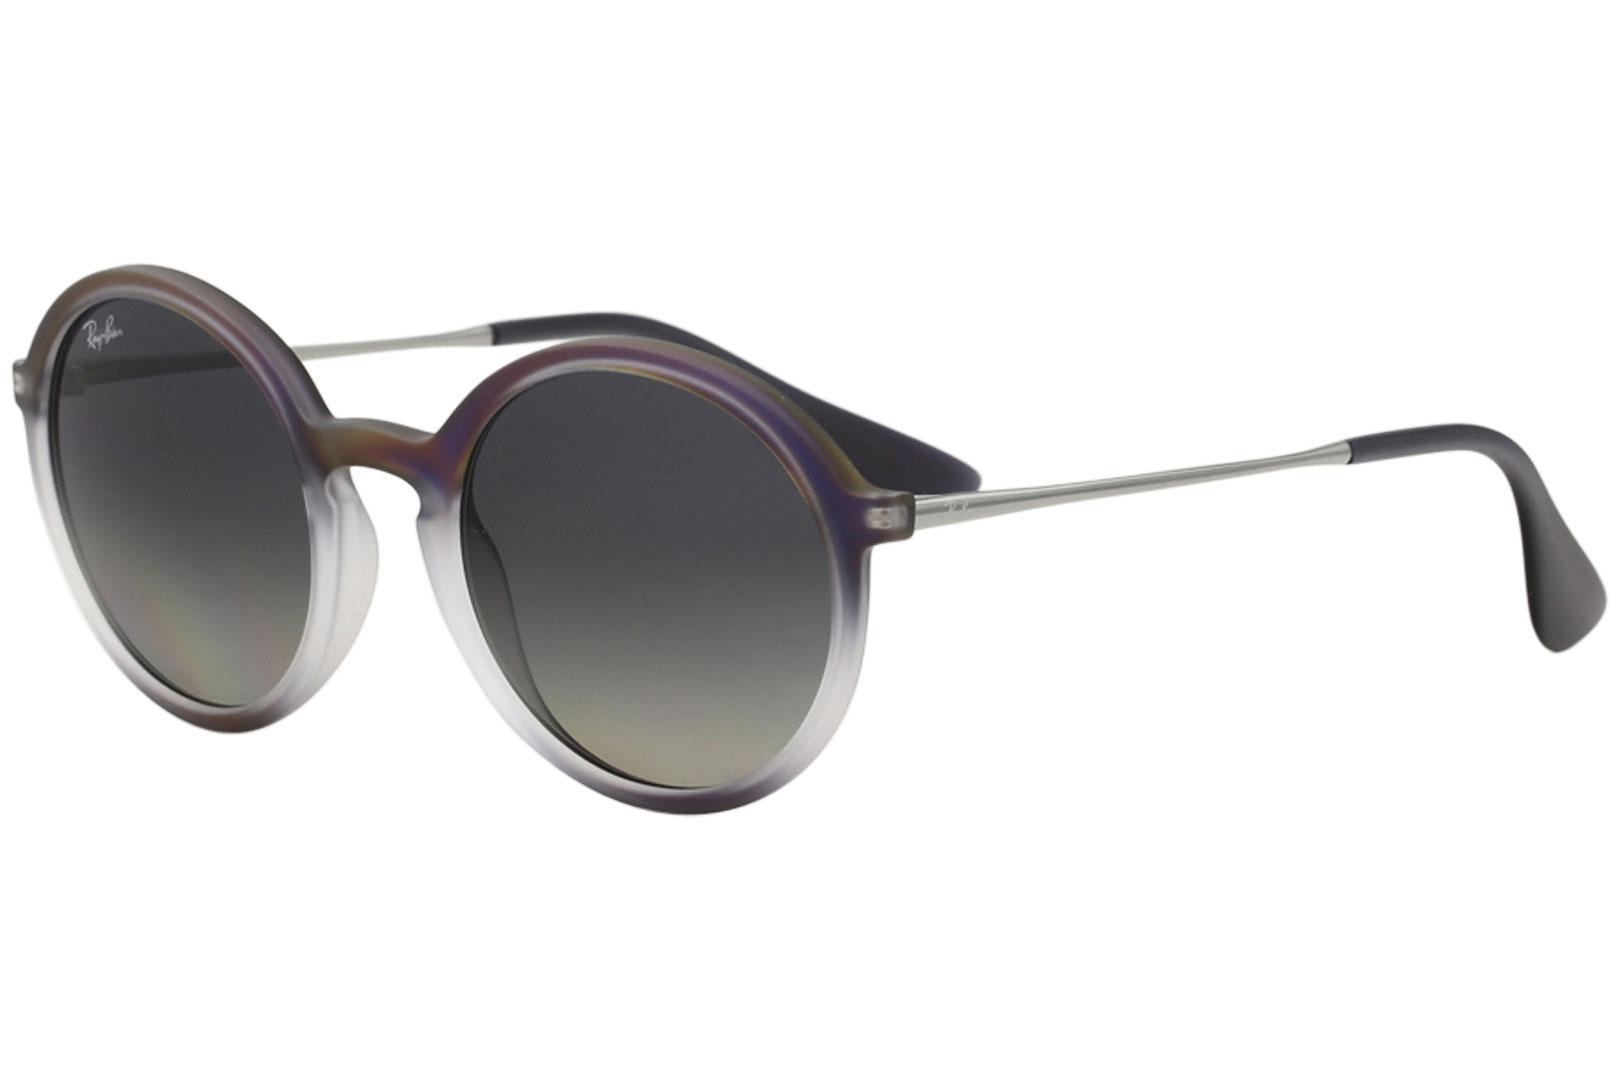 a660772a66e ... discount code for ray ban rb4222 rb 4222 rayban fashion round sunglasses  be7bd 79a25